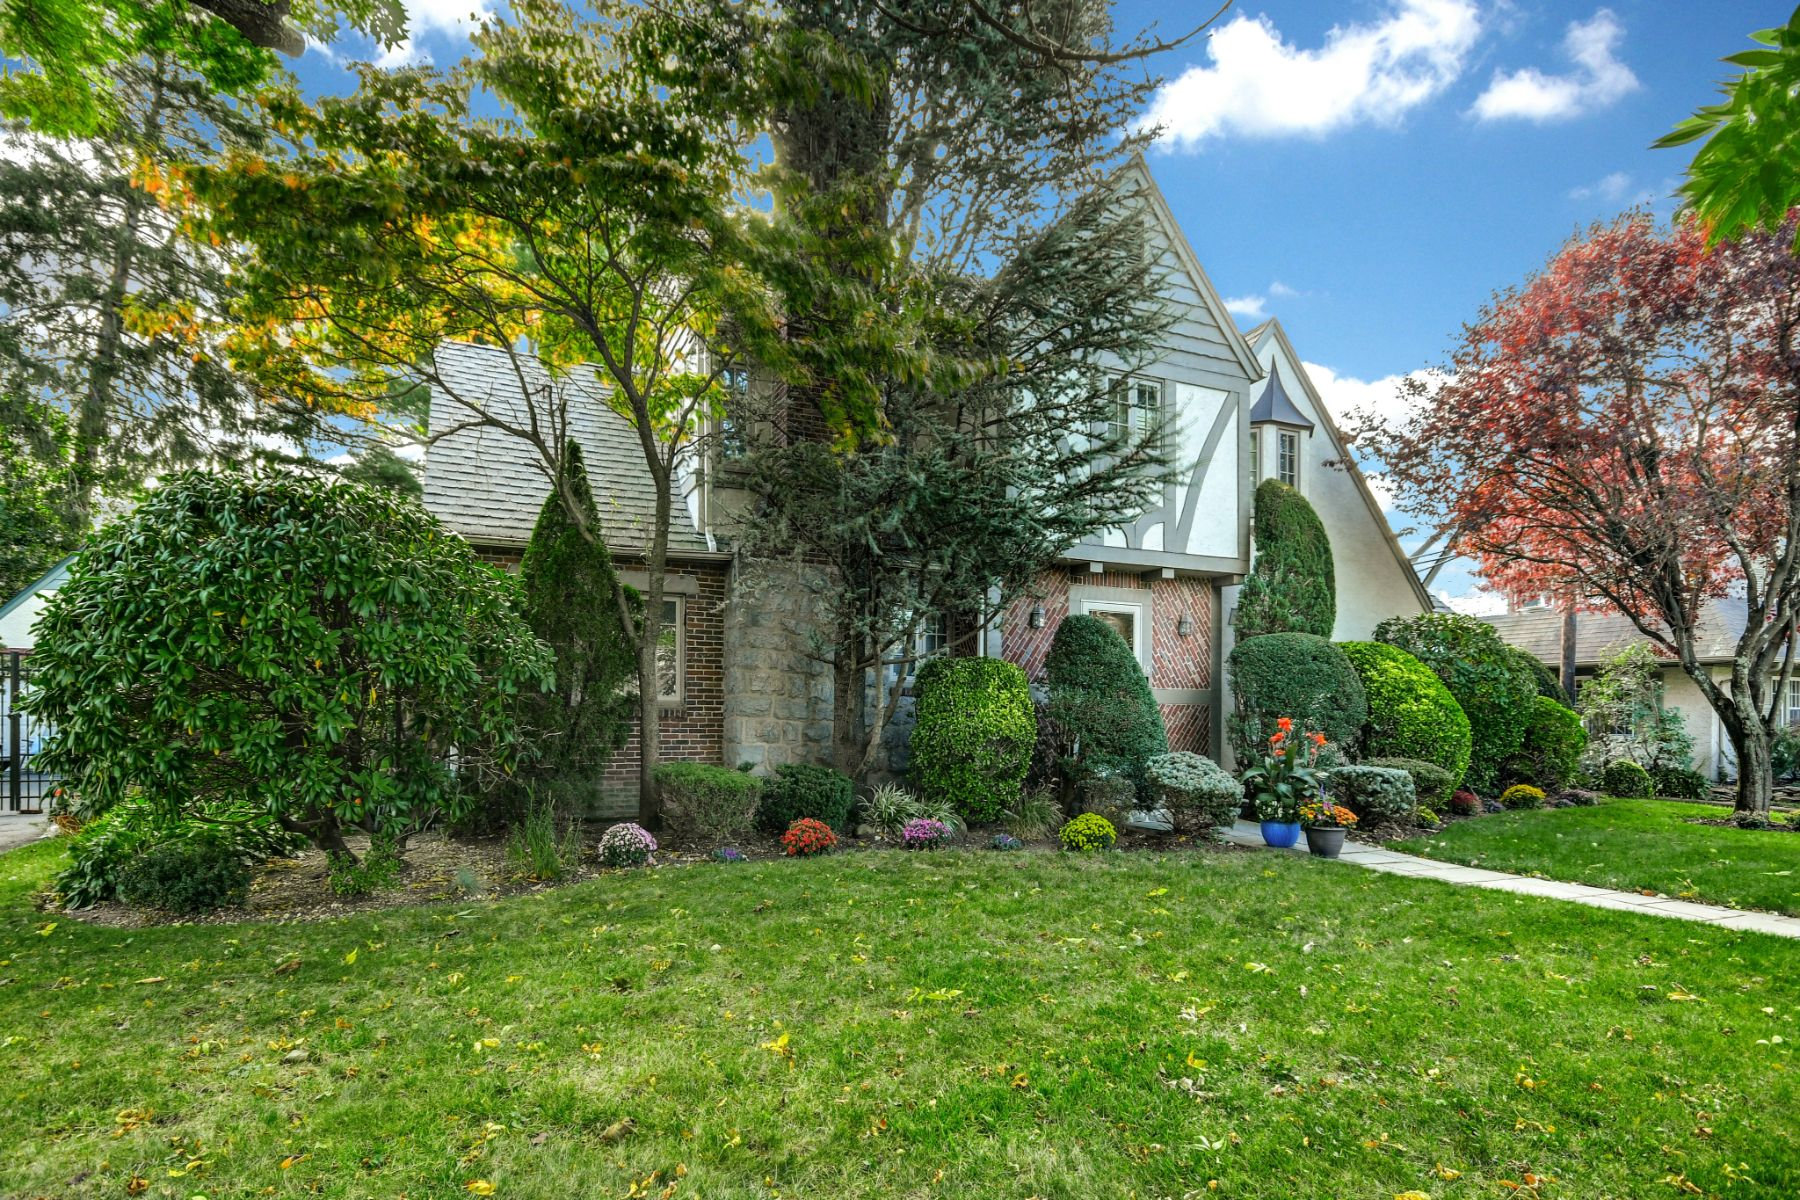 Single Family Homes for Sale at Rockville Centre 15 Wellesley Rd Rockville Centre, New York 11570 United States